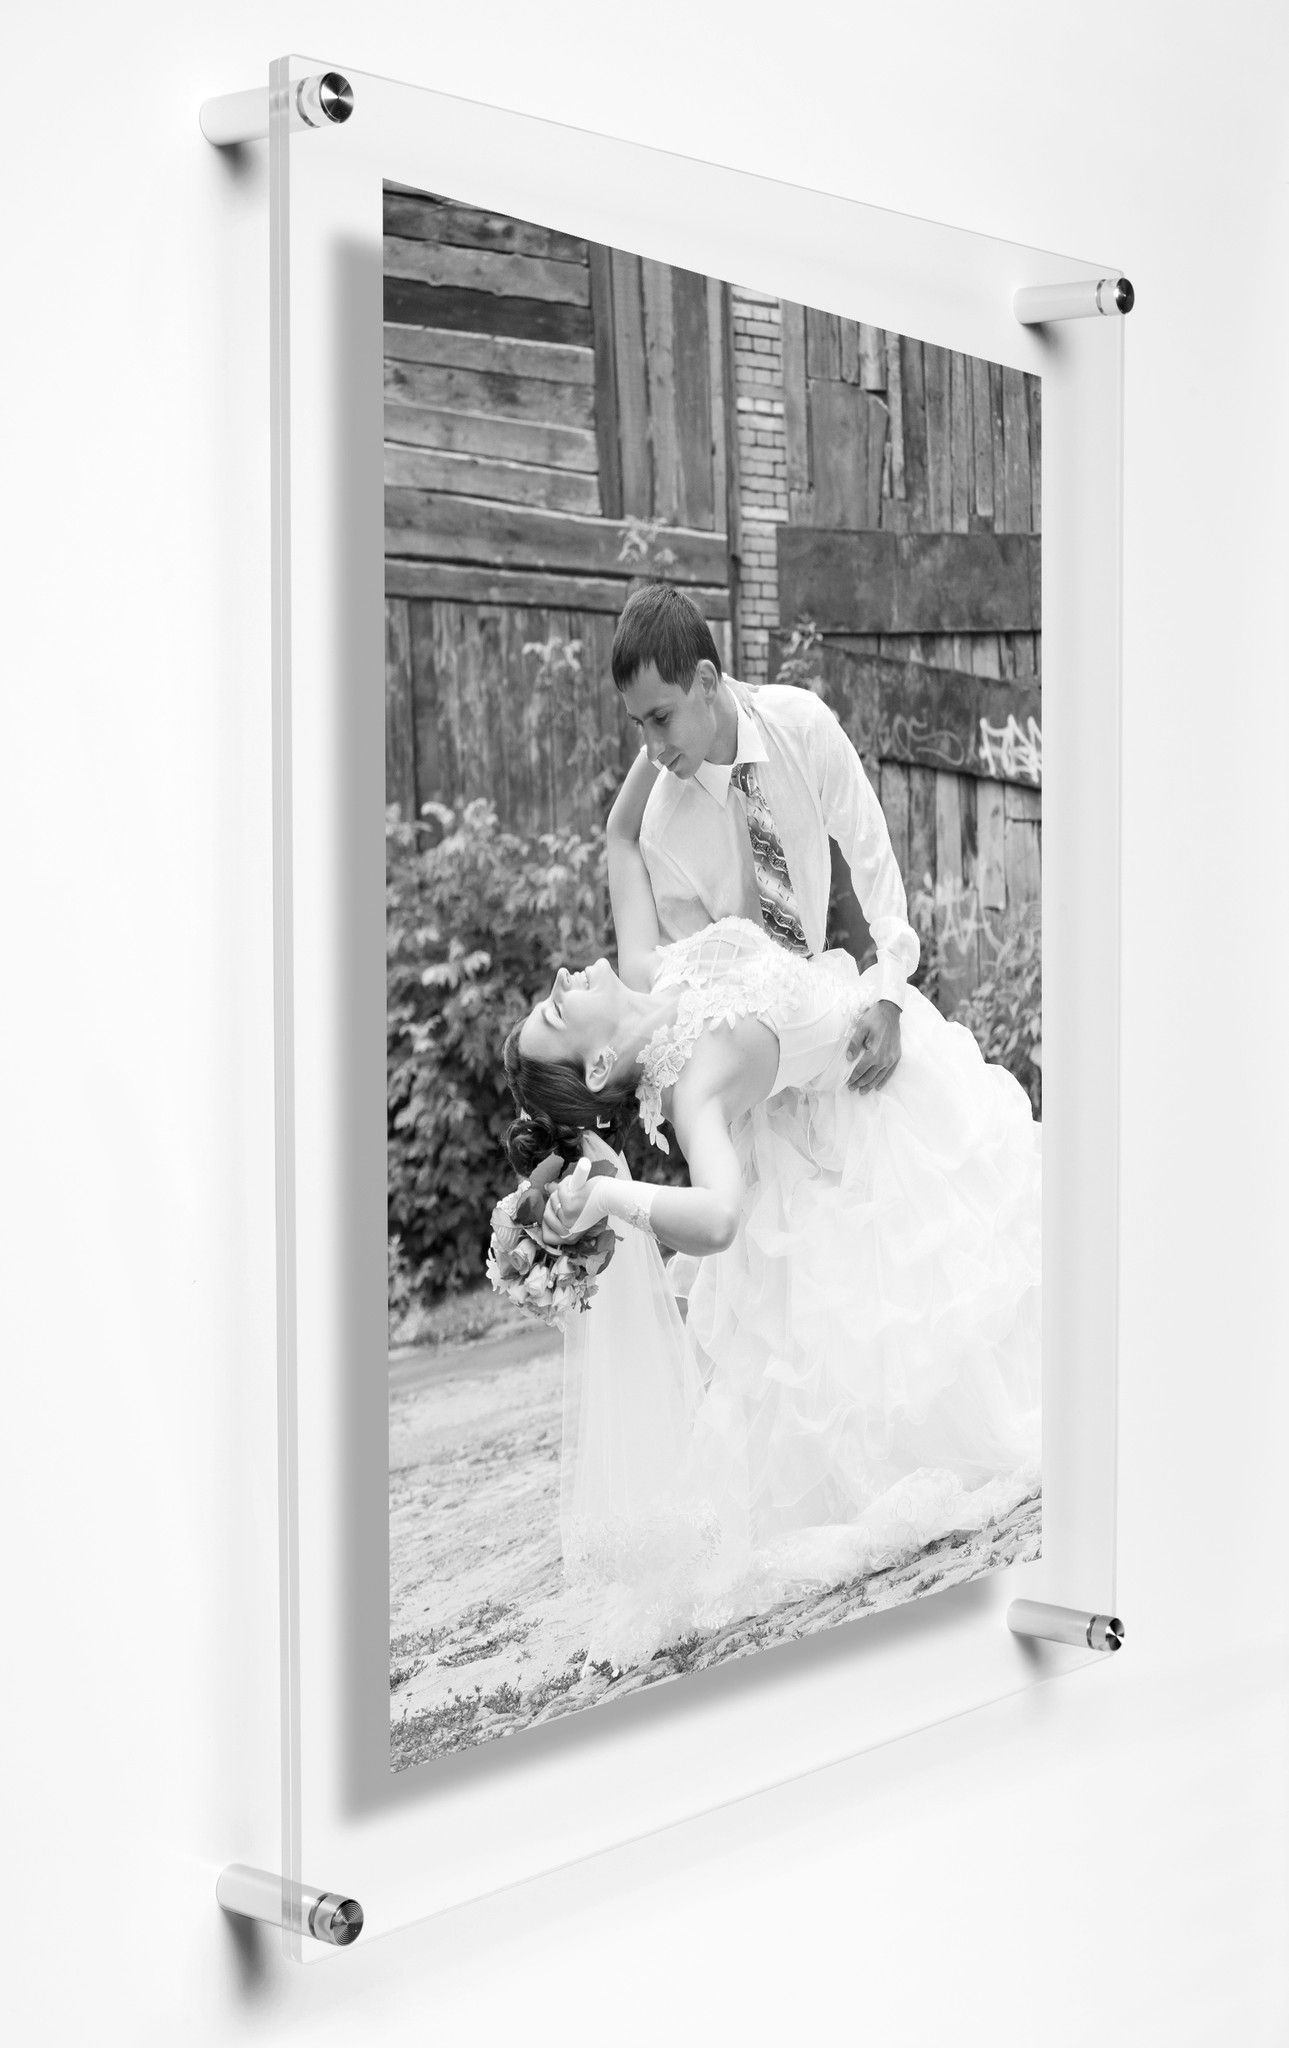 Large Enough For 18 X 24 Posters And Prints This Floating Acrylic Frame Lets You Change Your Display Again A Single Light Weight